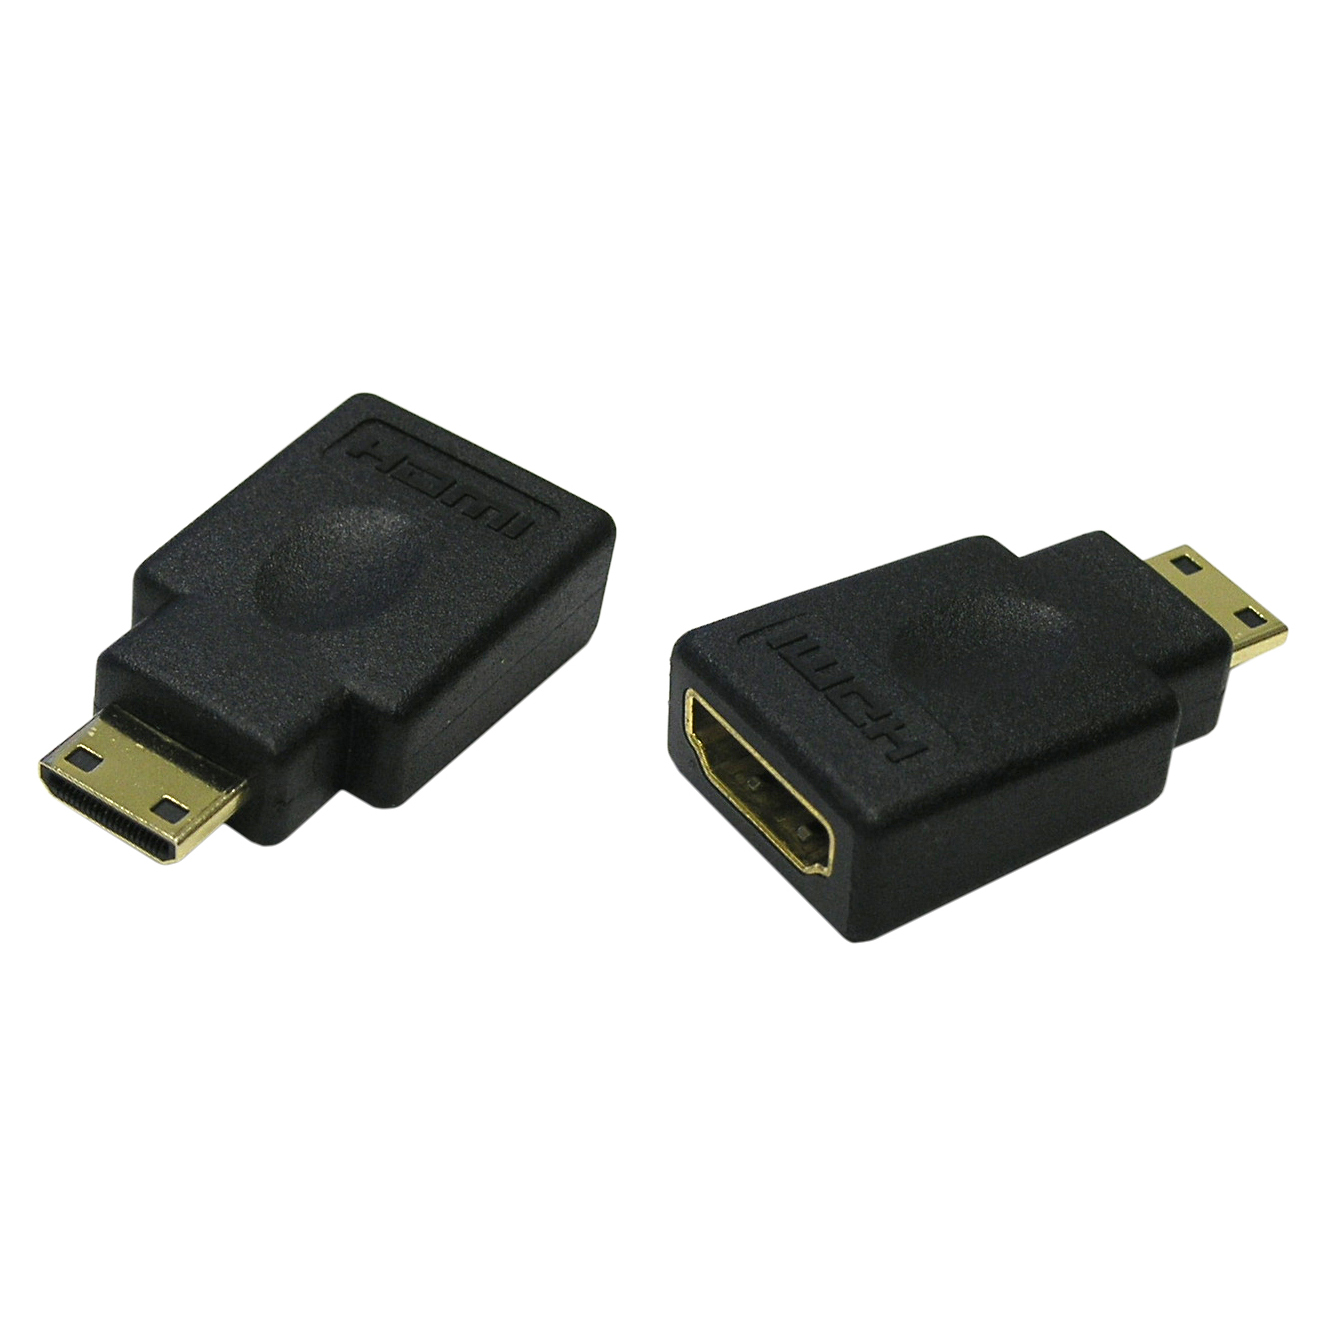 hdmi to mini hdmi adapter hdmi female to mini hdmi type c male. Black Bedroom Furniture Sets. Home Design Ideas